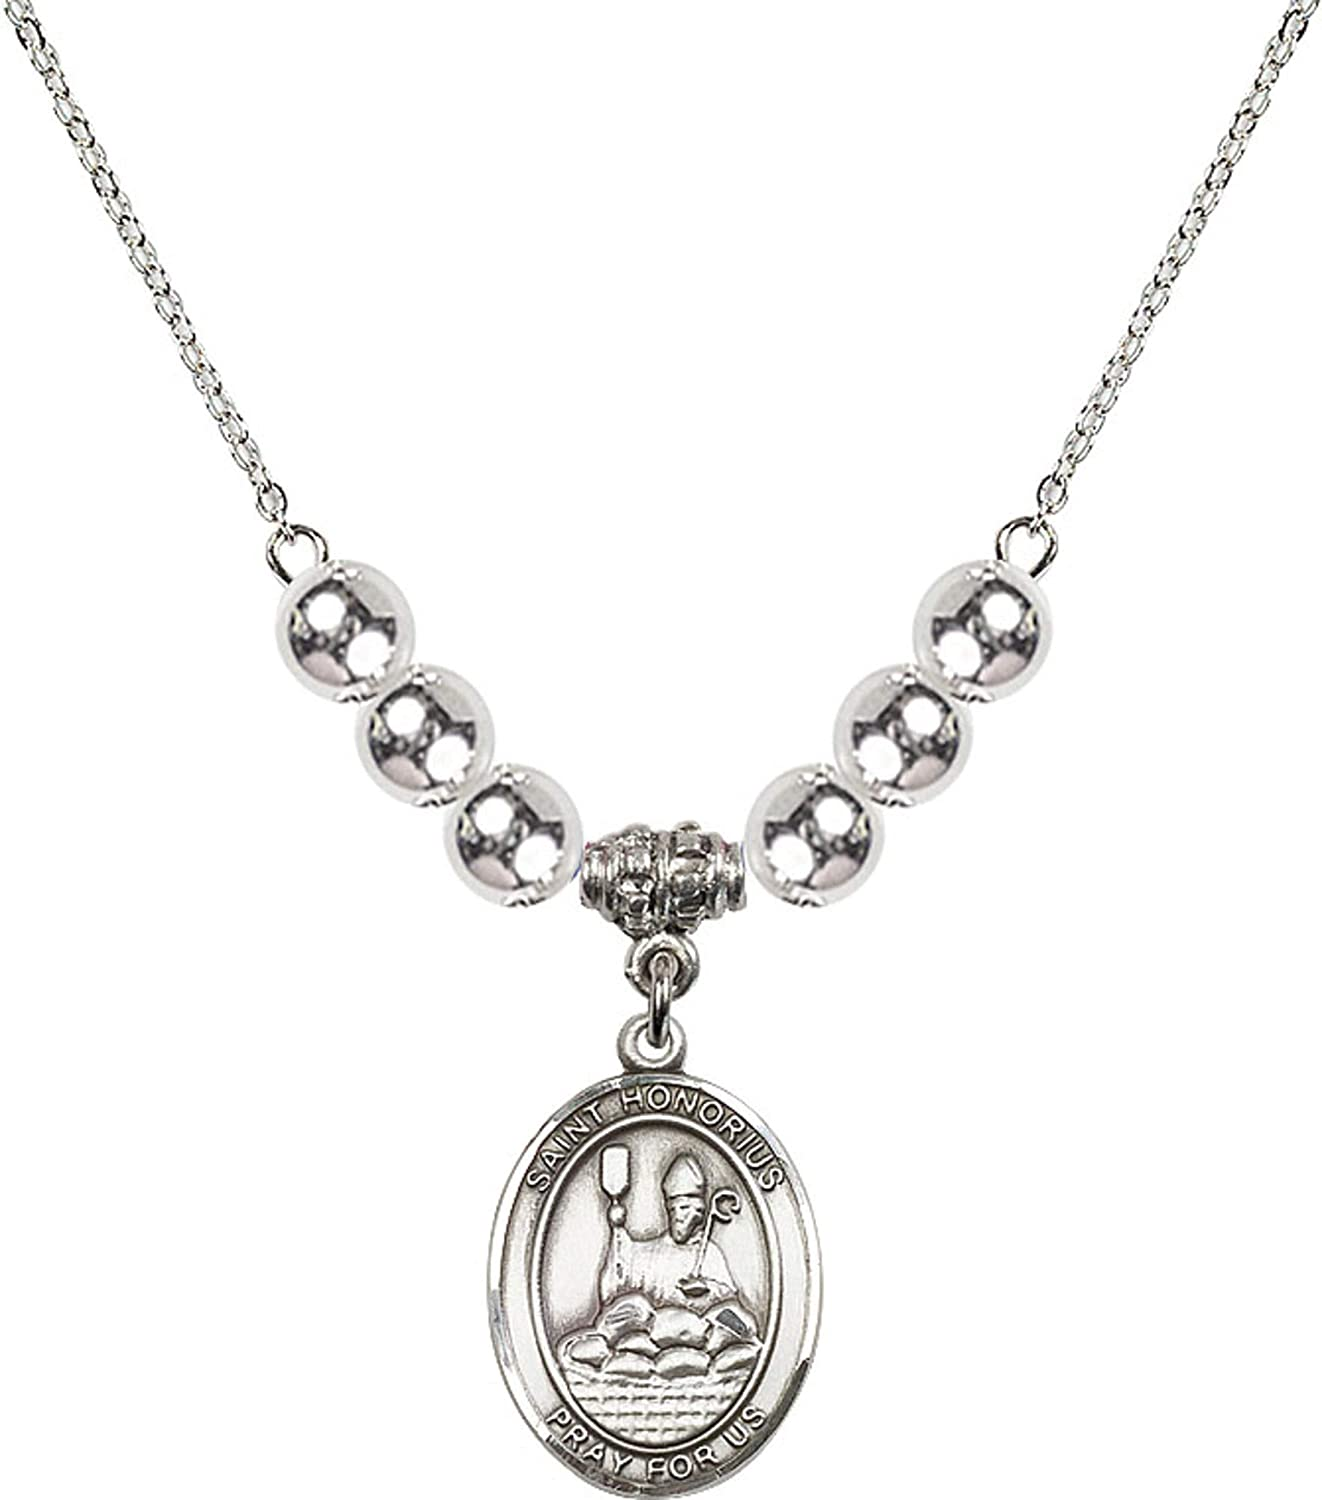 Bonyak Jewelry 18 Inch Rhodium Plated Necklace w// 6mm Sterling Silver Beads and Saint Honorius of Amiens Charm